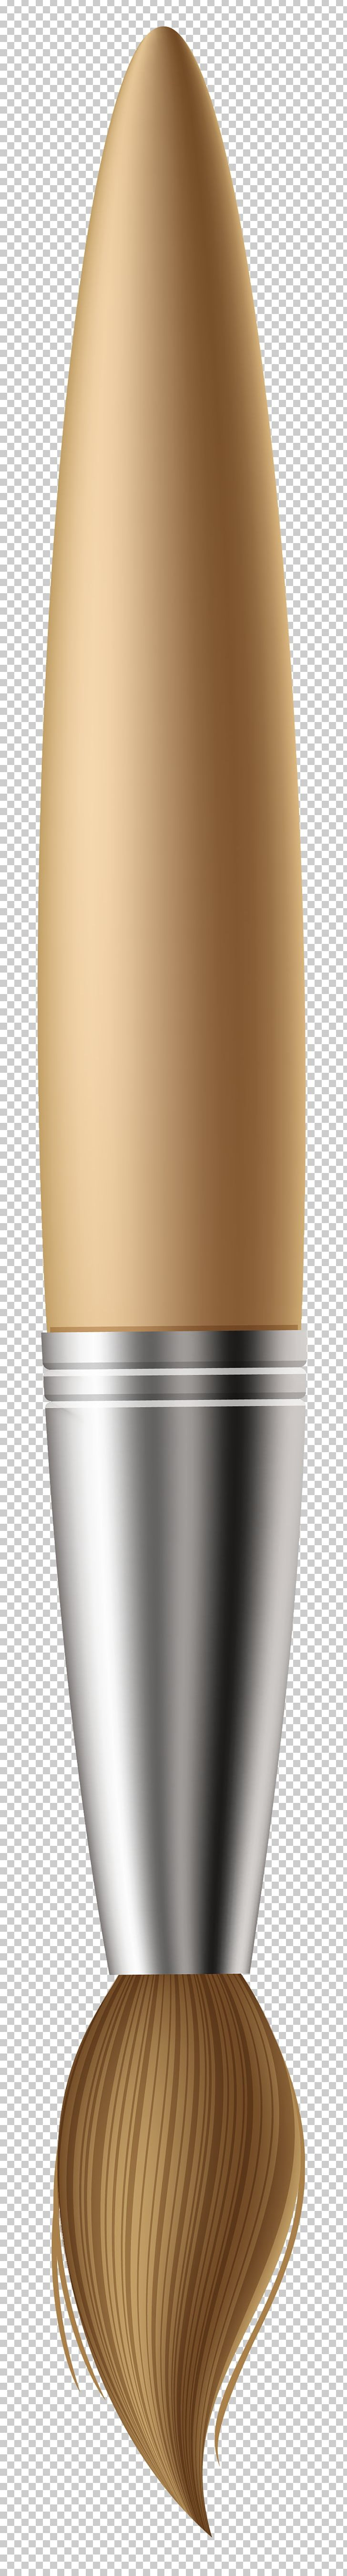 Brown Brush Design Product PNG, Clipart, Brush, Clipart, Design, Image, Paint Brush Free PNG Download